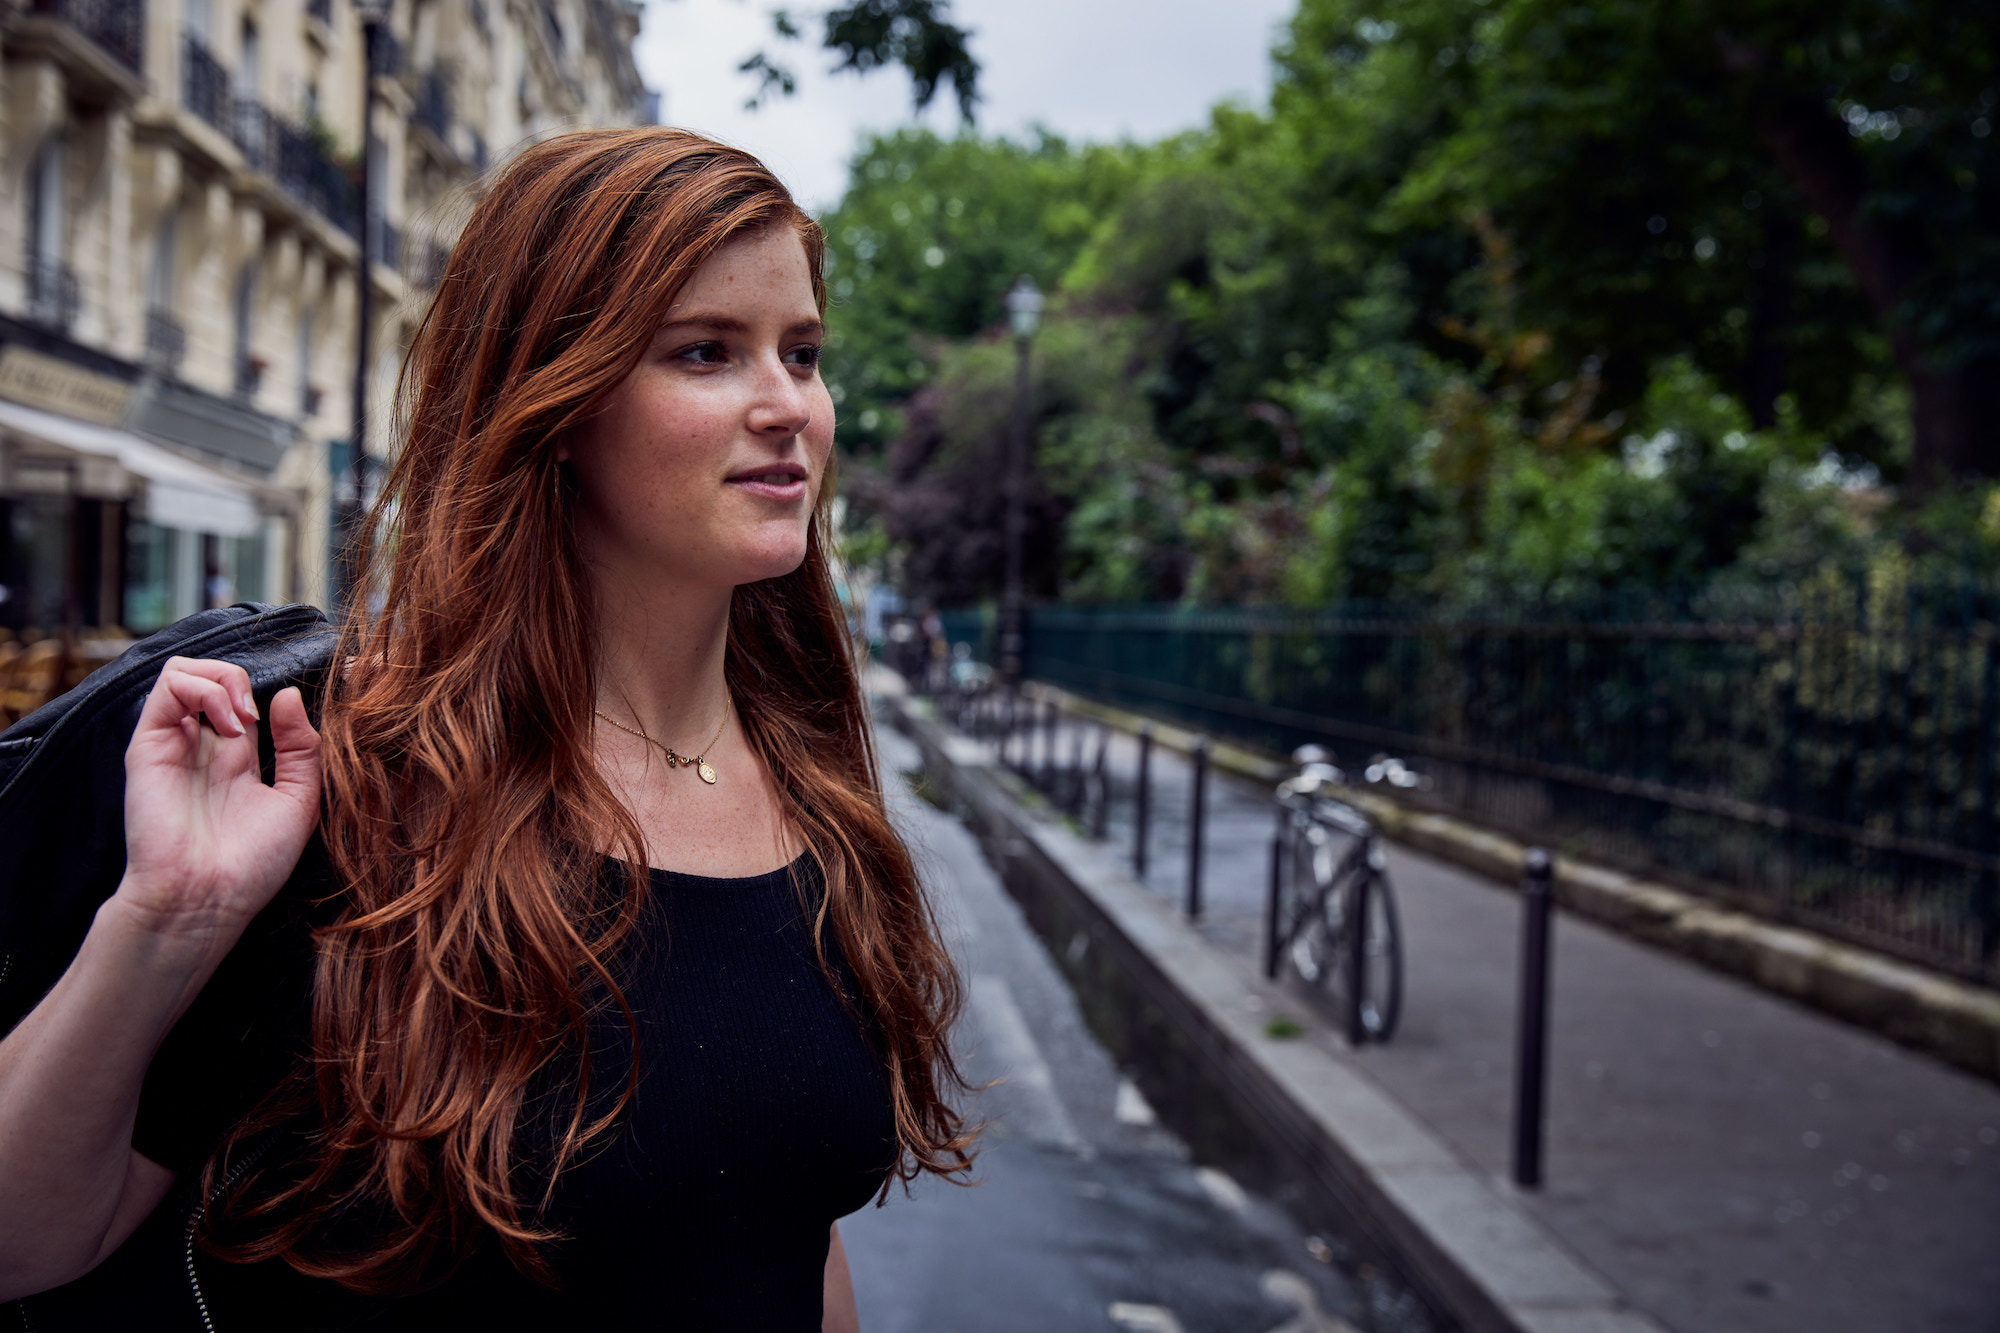 A young red-haired woman with a jacked slung over her right shoulder who loves living in Paris.